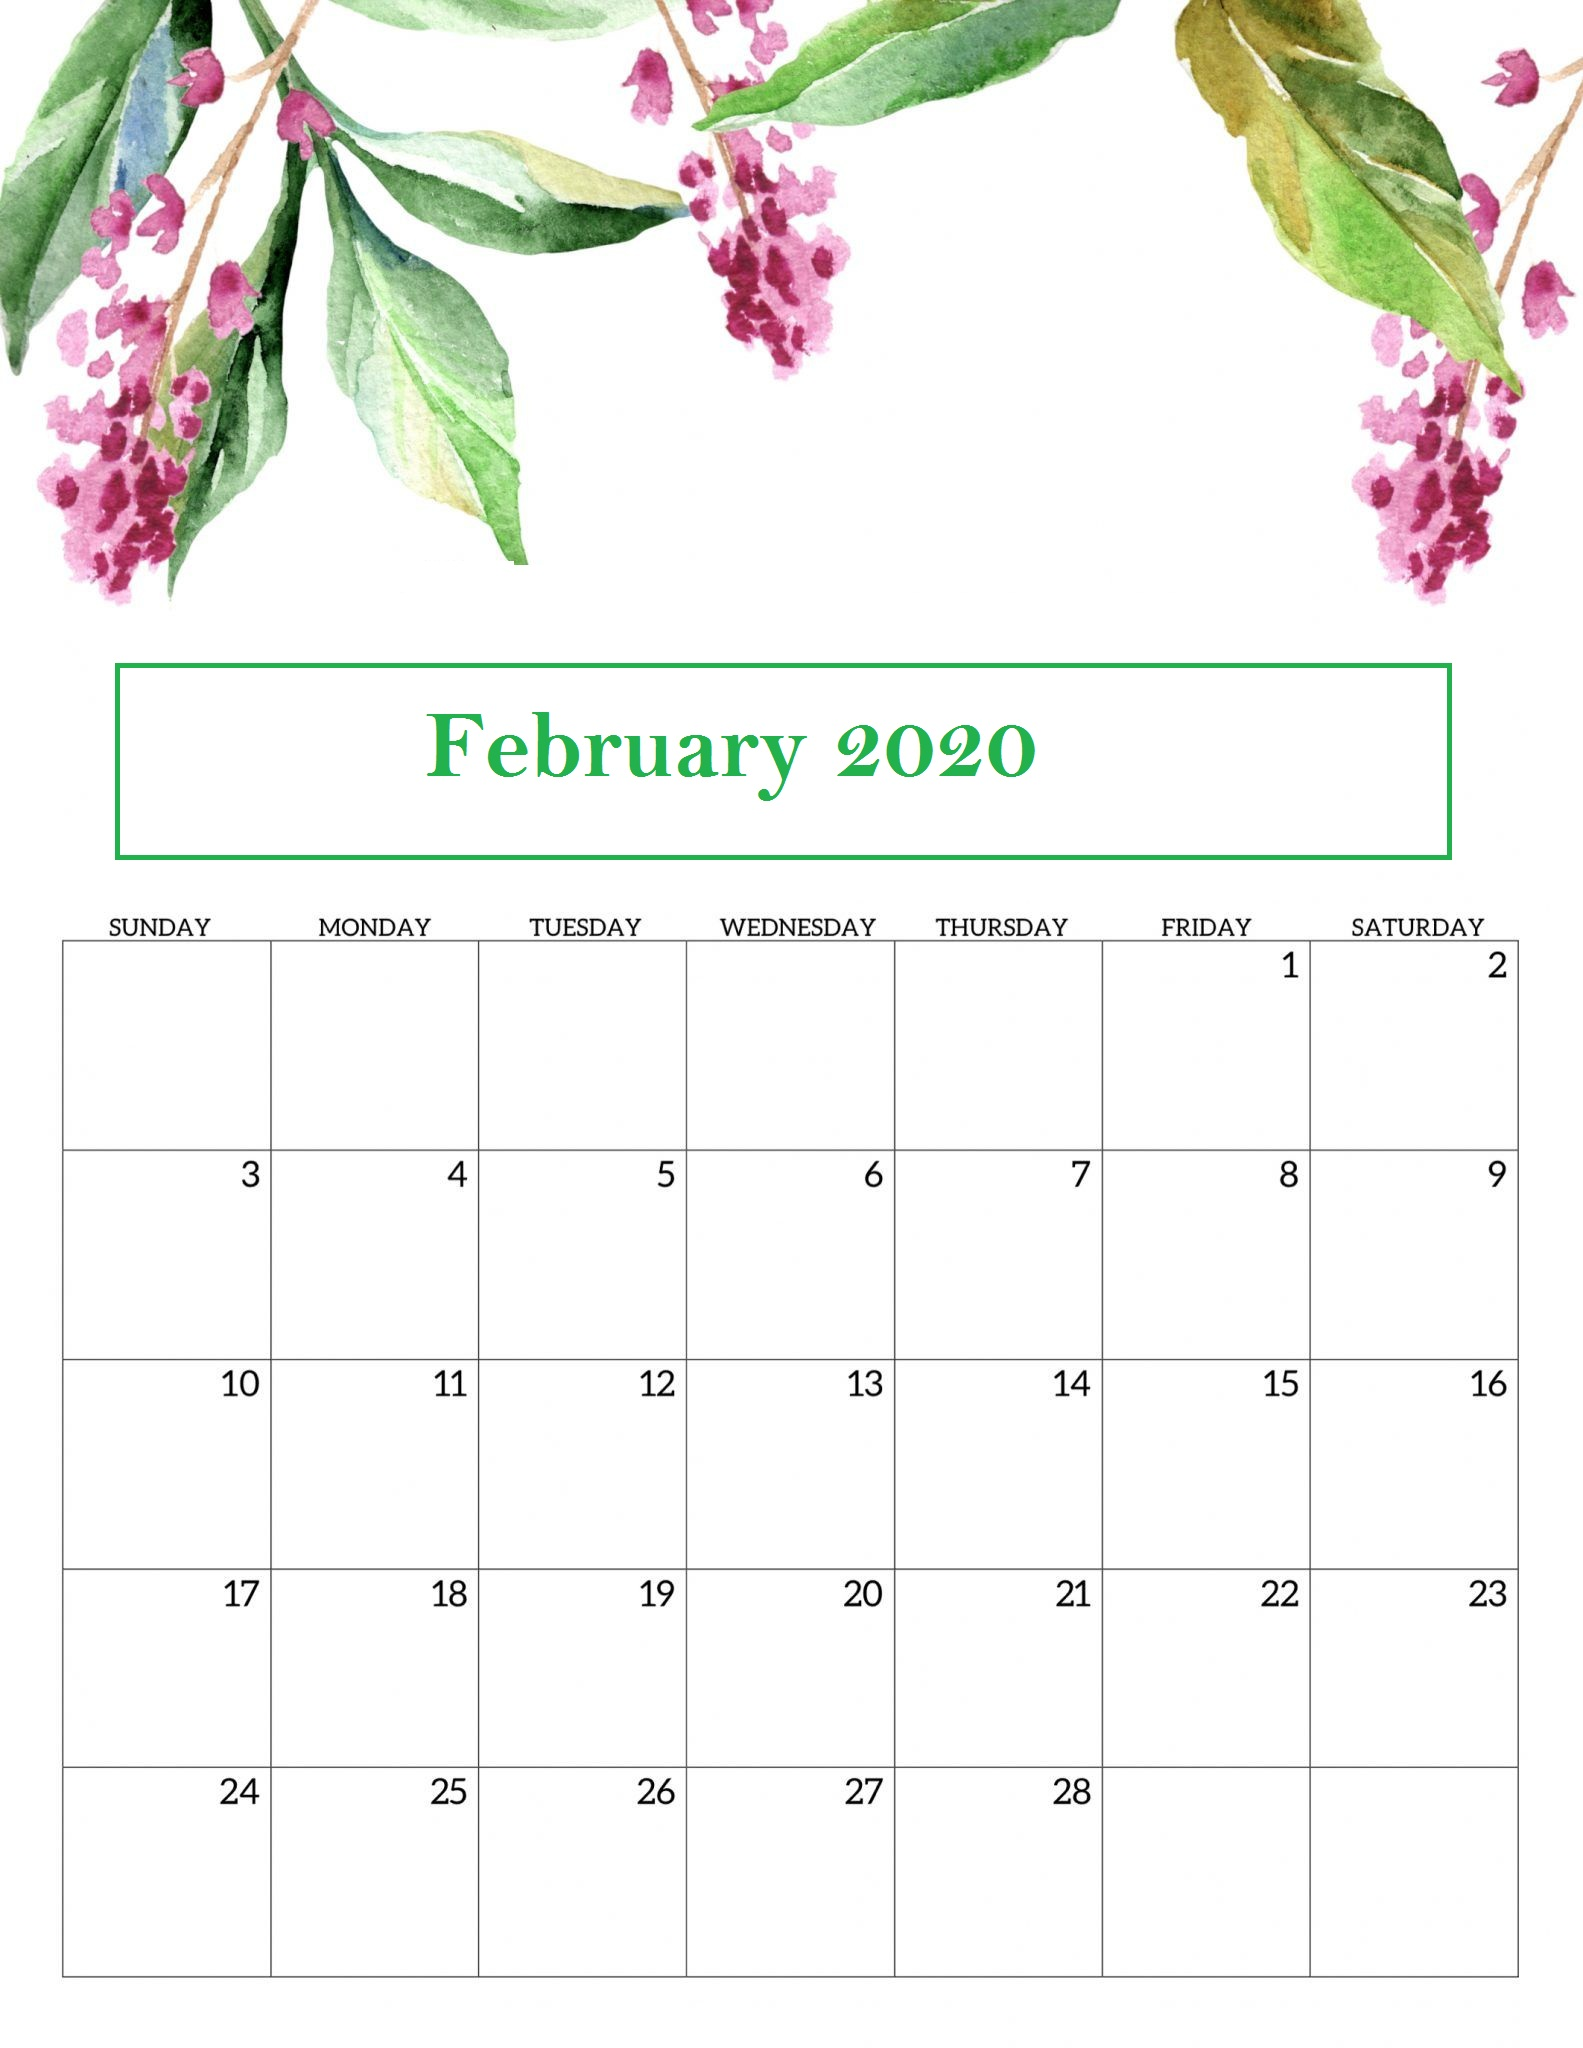 Floral February 2020 Calendar Wallpaper For Desktop Iphone Laptop